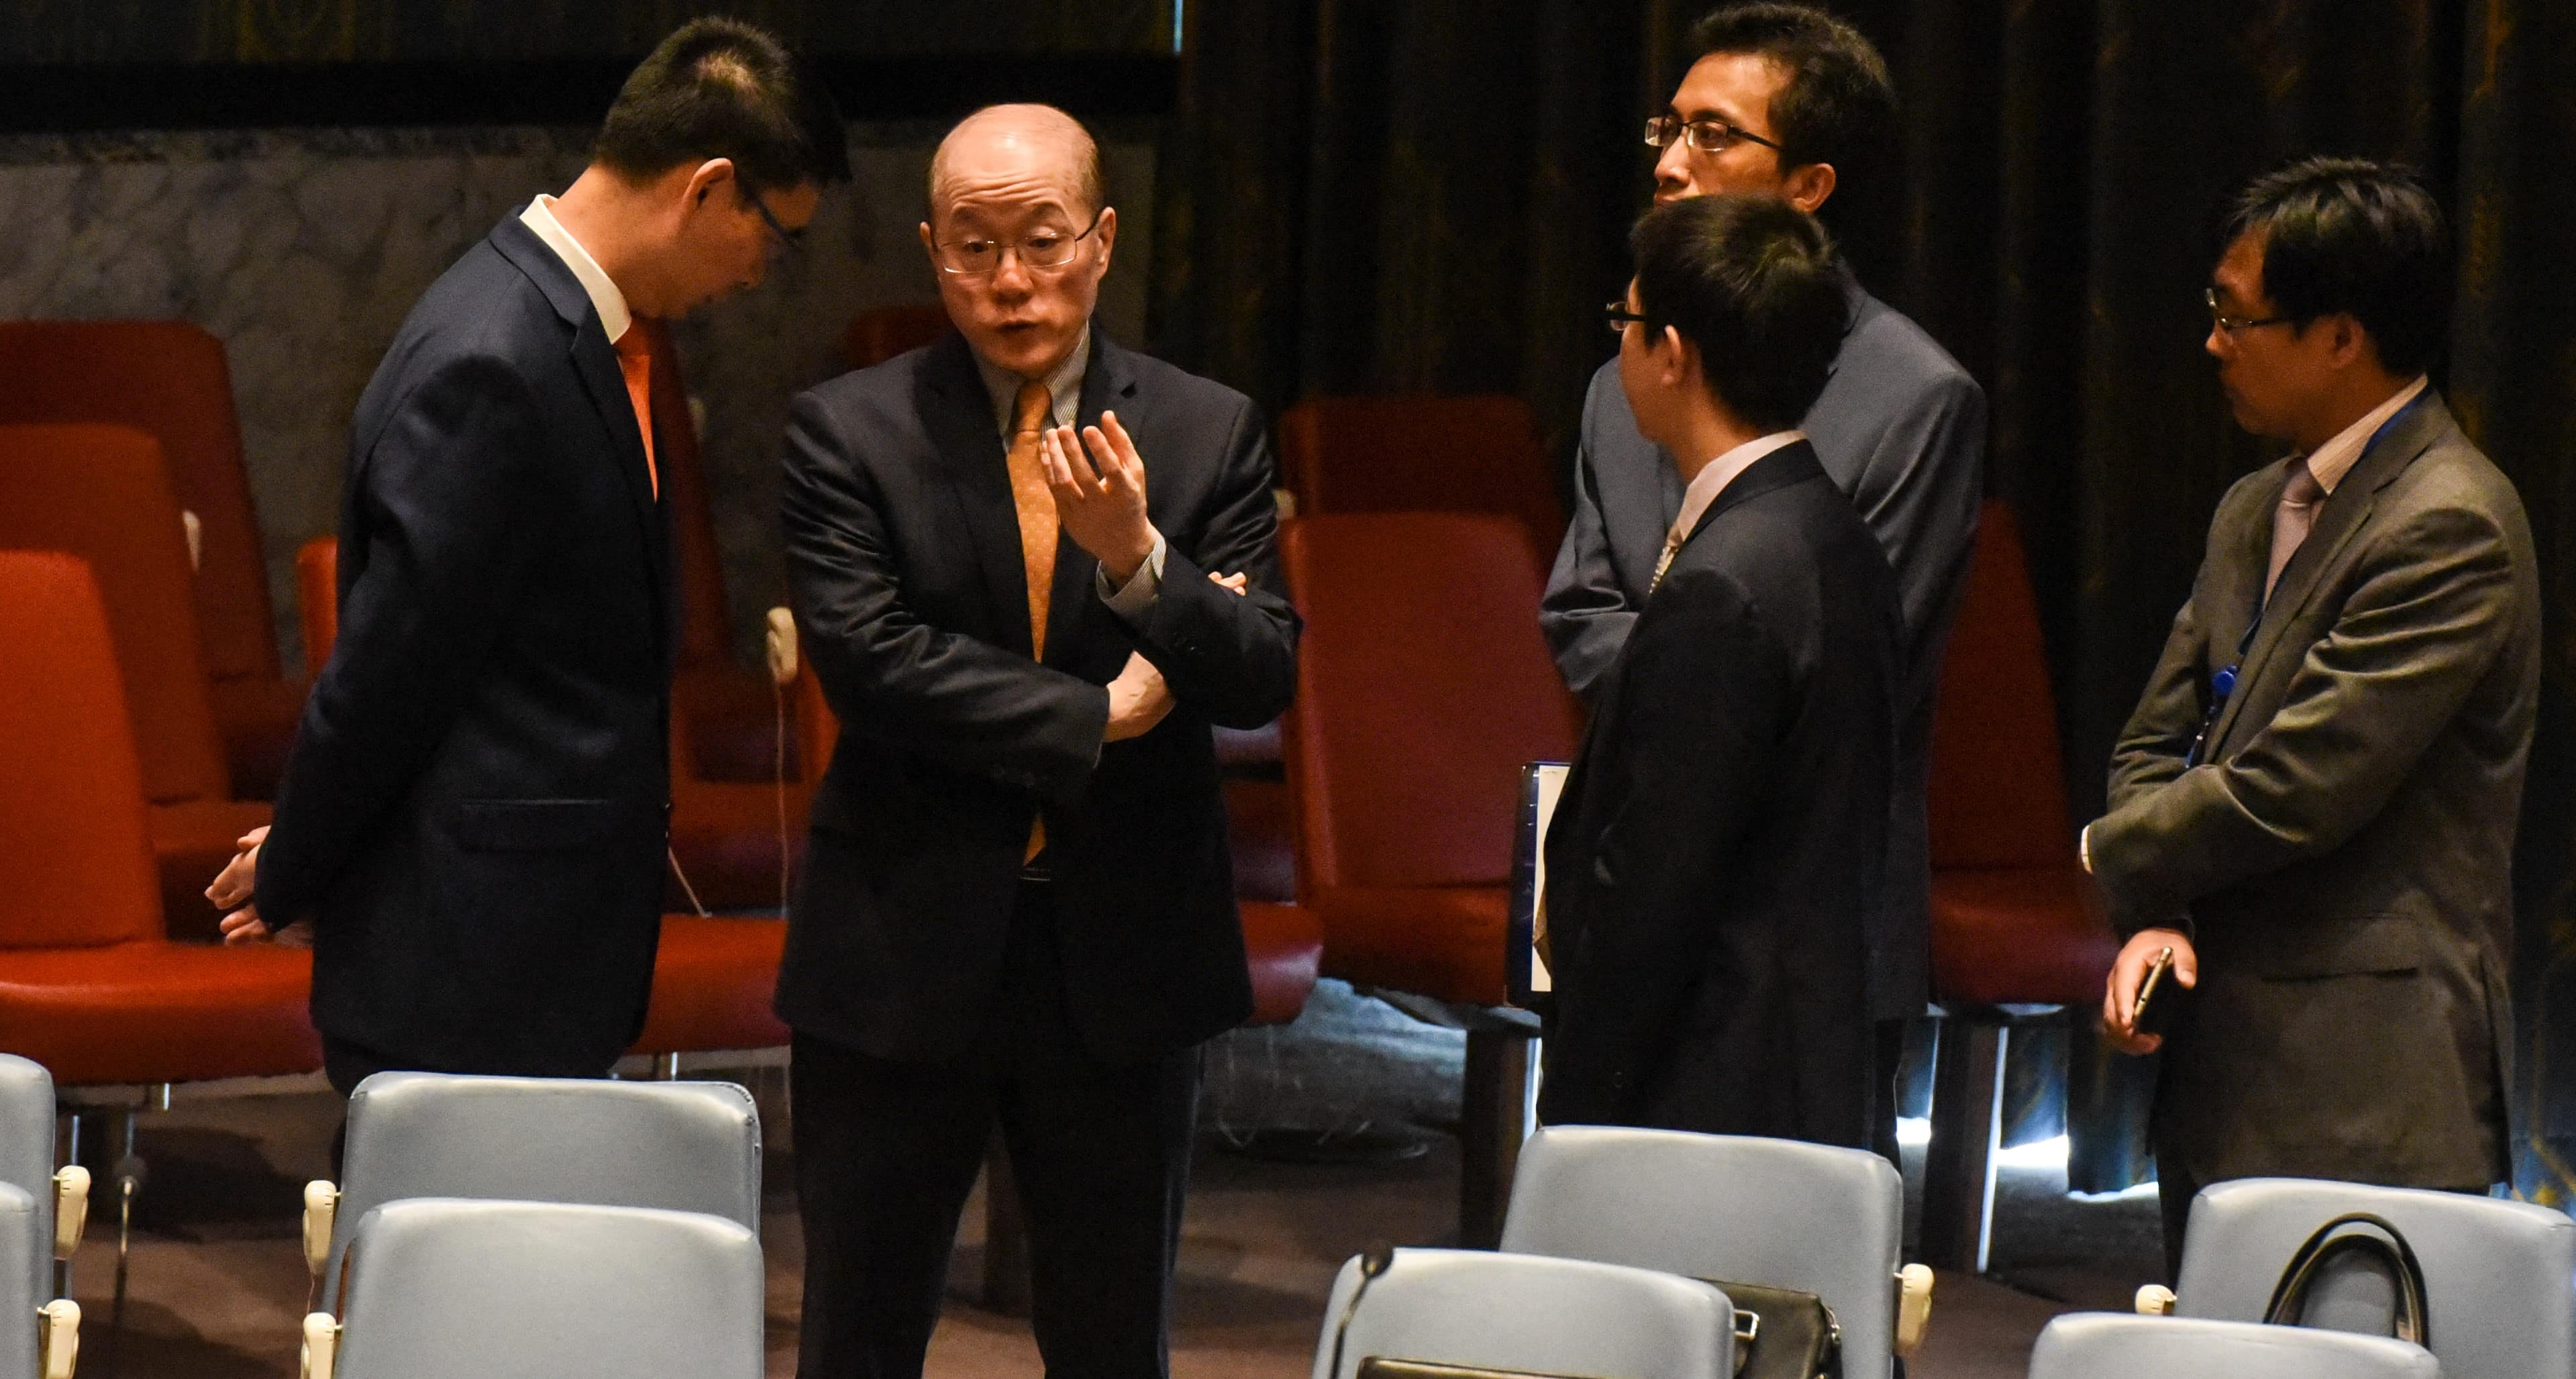 Chinese Ambassador to the UN Liu Jieyi speaks with his team during an emergency UN Security Council meeting to discuss North Korea's nuclear test, September 2017 (Photo: Getty Images/Stephanie Keith)